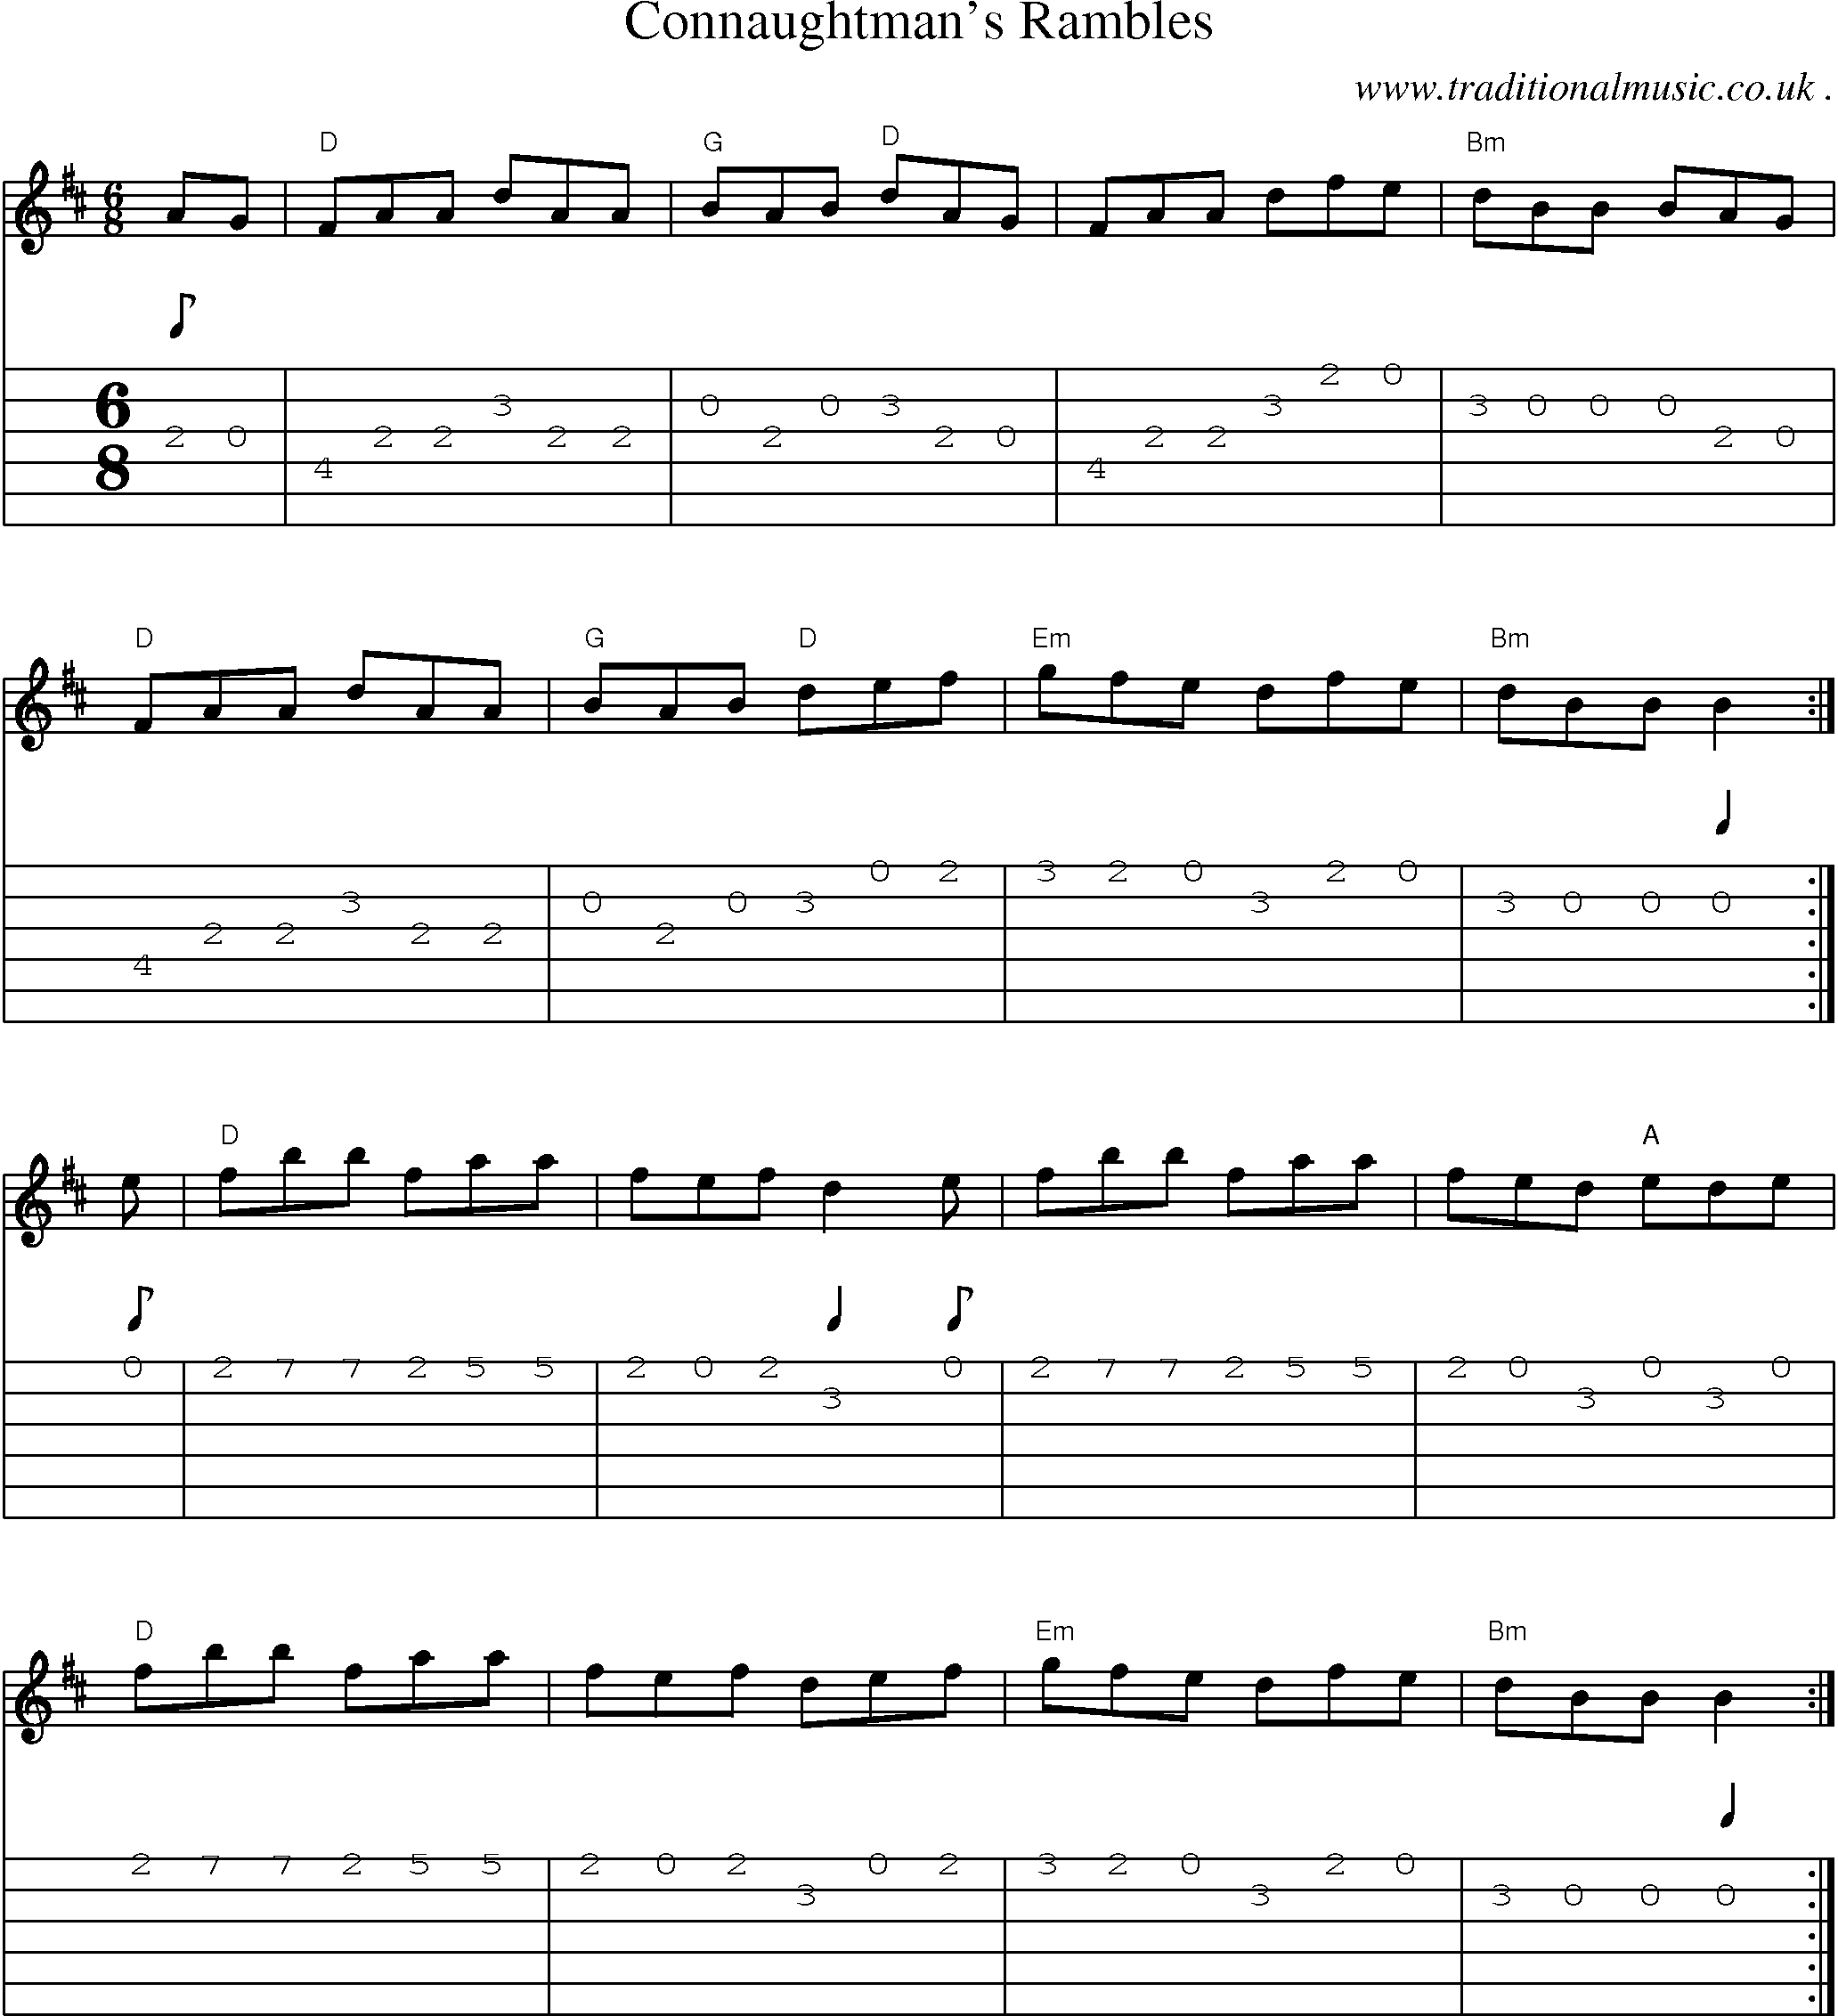 image relating to Printable Guitar Tab identified as Well known consultation music, Ratings and Tabs for Guitar